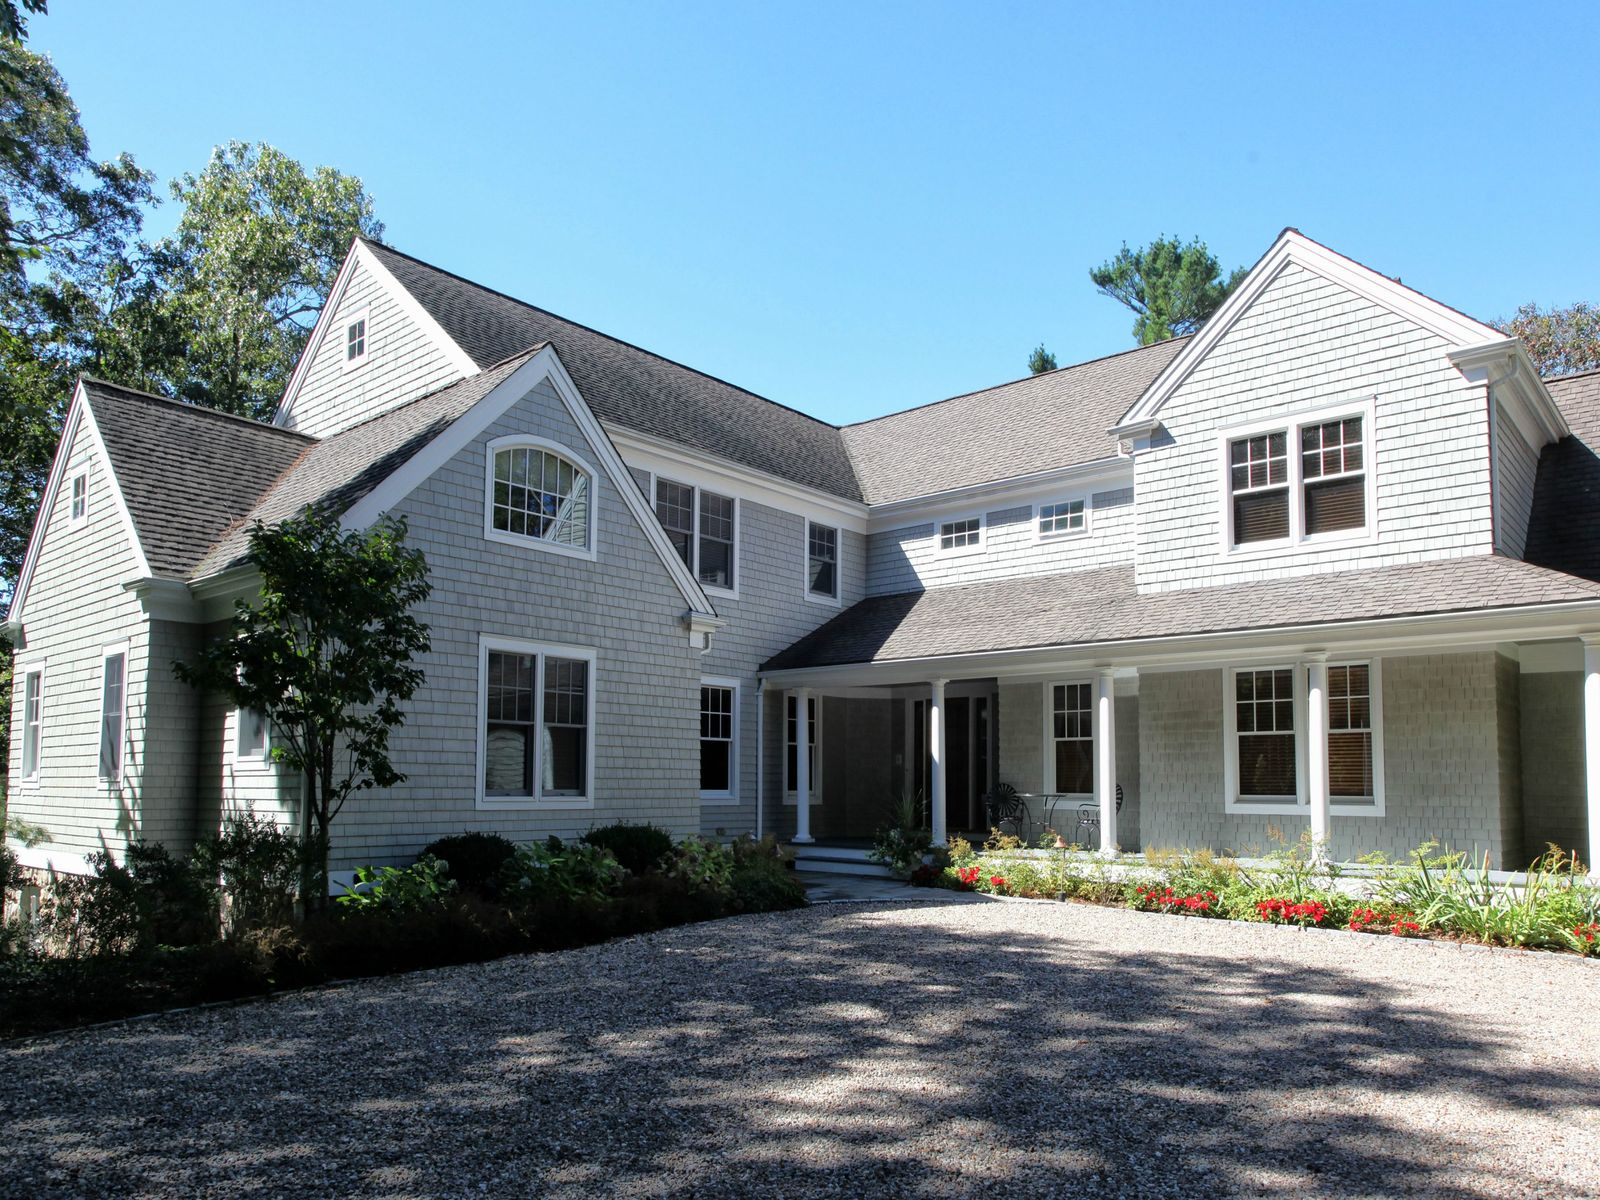 Custom Built Waterview Home in Quissett, Falmouth MA Single Family Home - Cape Cod Real Estate